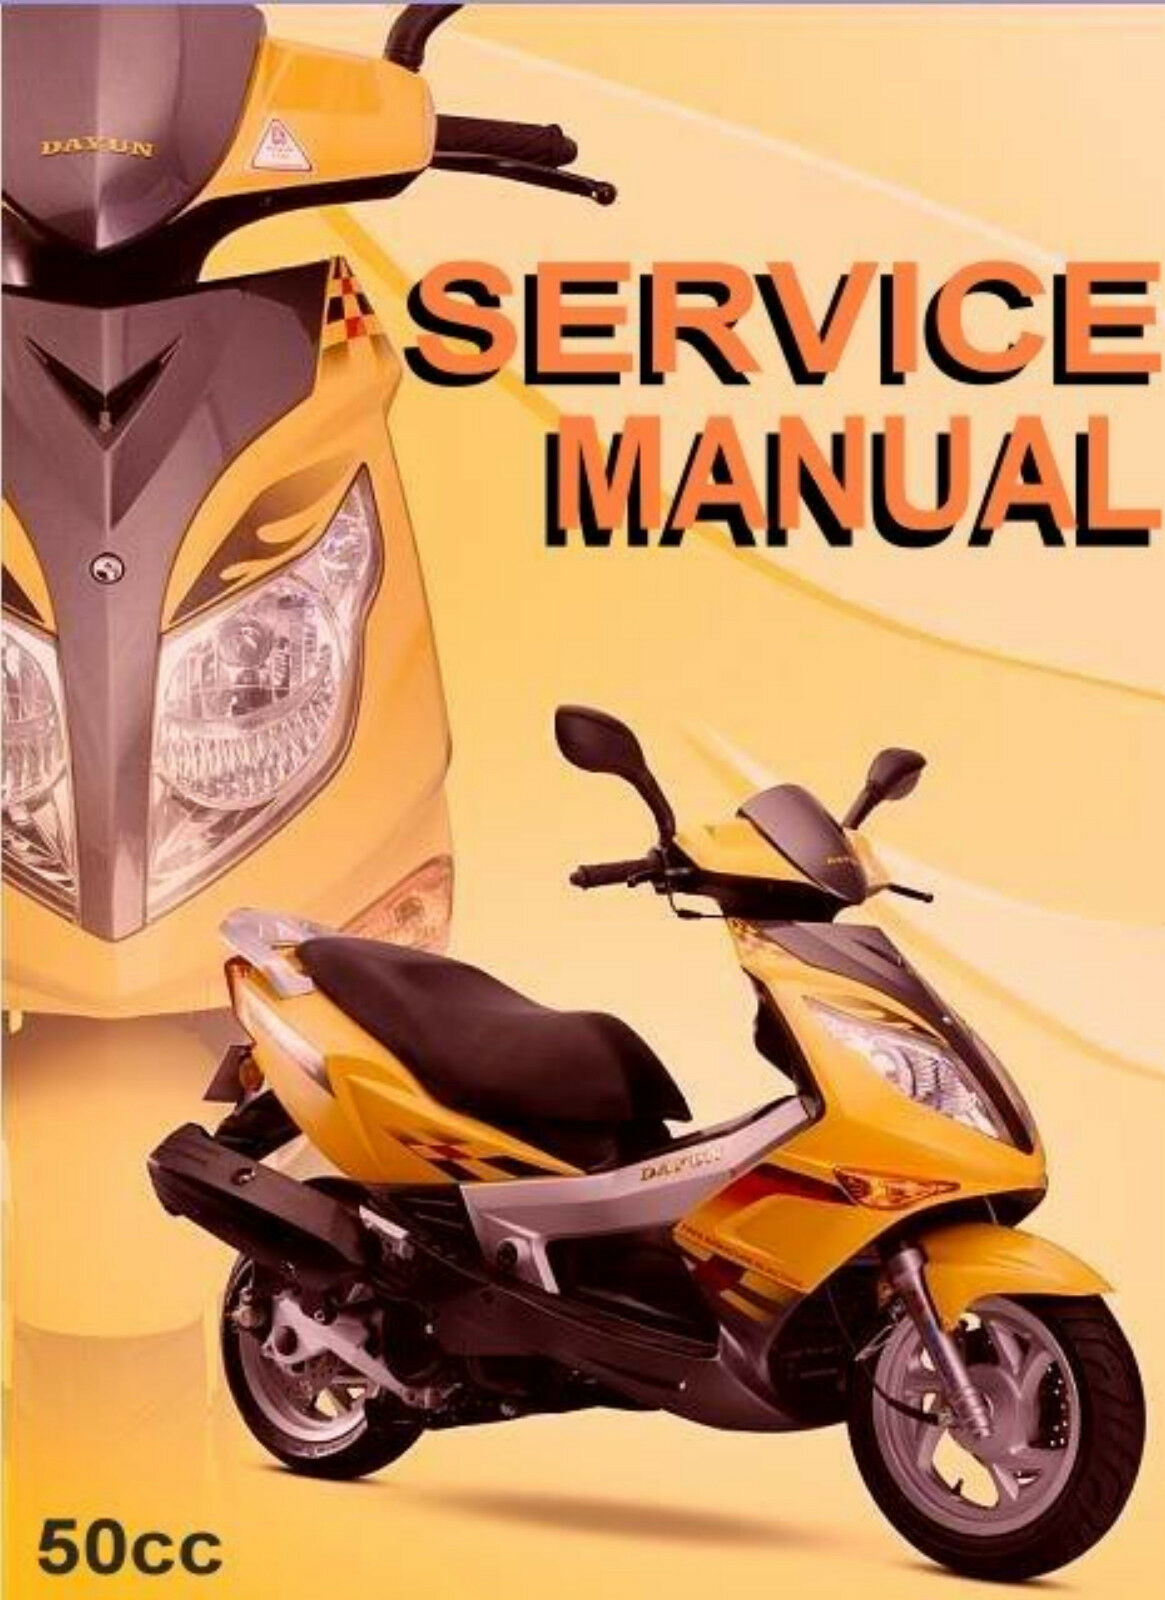 Chinese Scooter 50cc GY6 Service Repair Shop Manual on CD VIP Peace Sports  Sanli 1 of 3 Chinese Scooter 50cc GY6 Service Repair Shop Manual ...